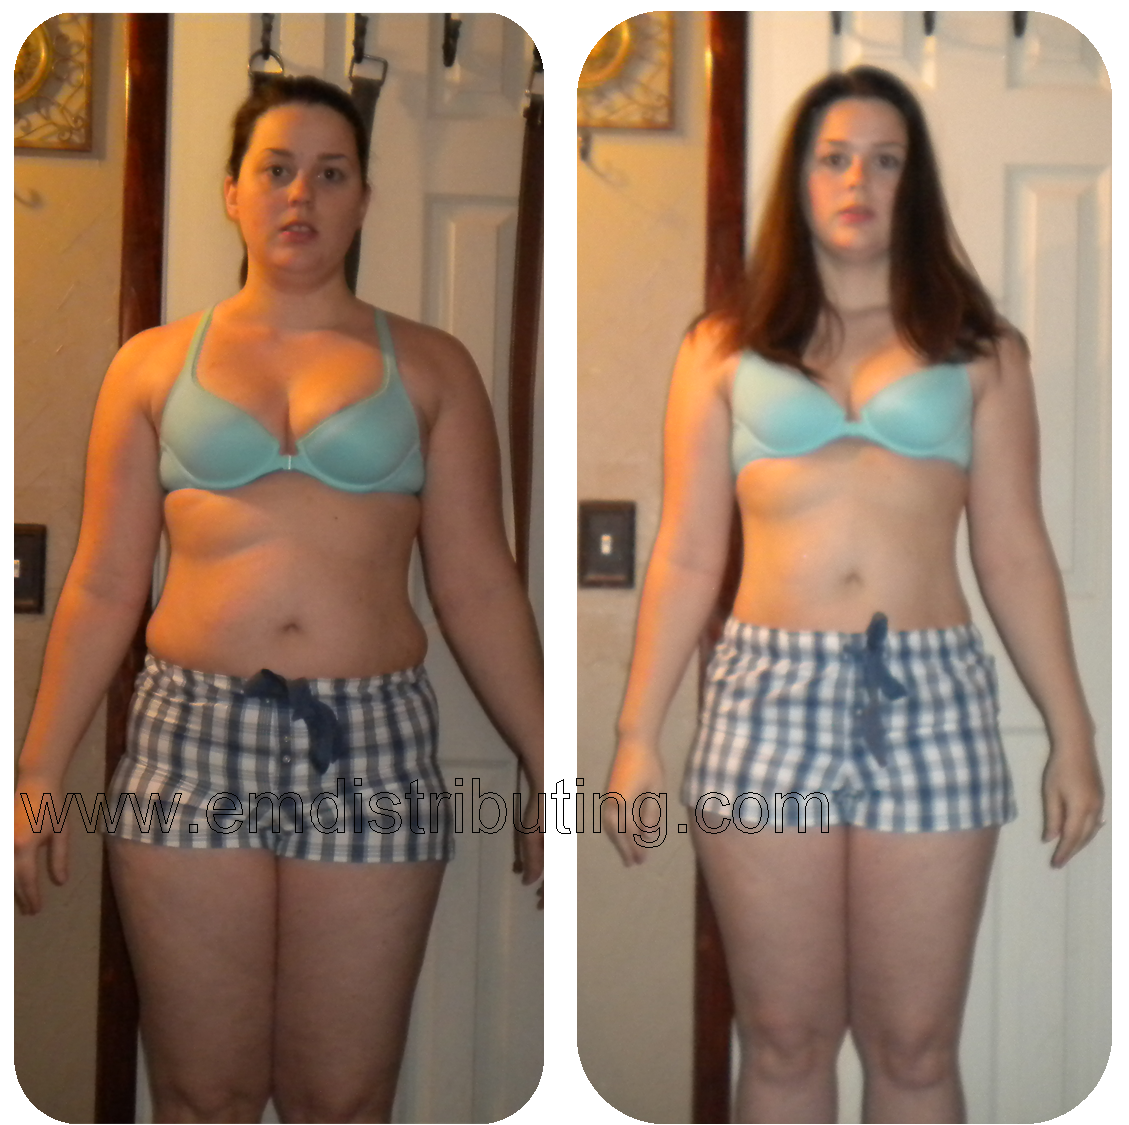 Weight loss images png image 2